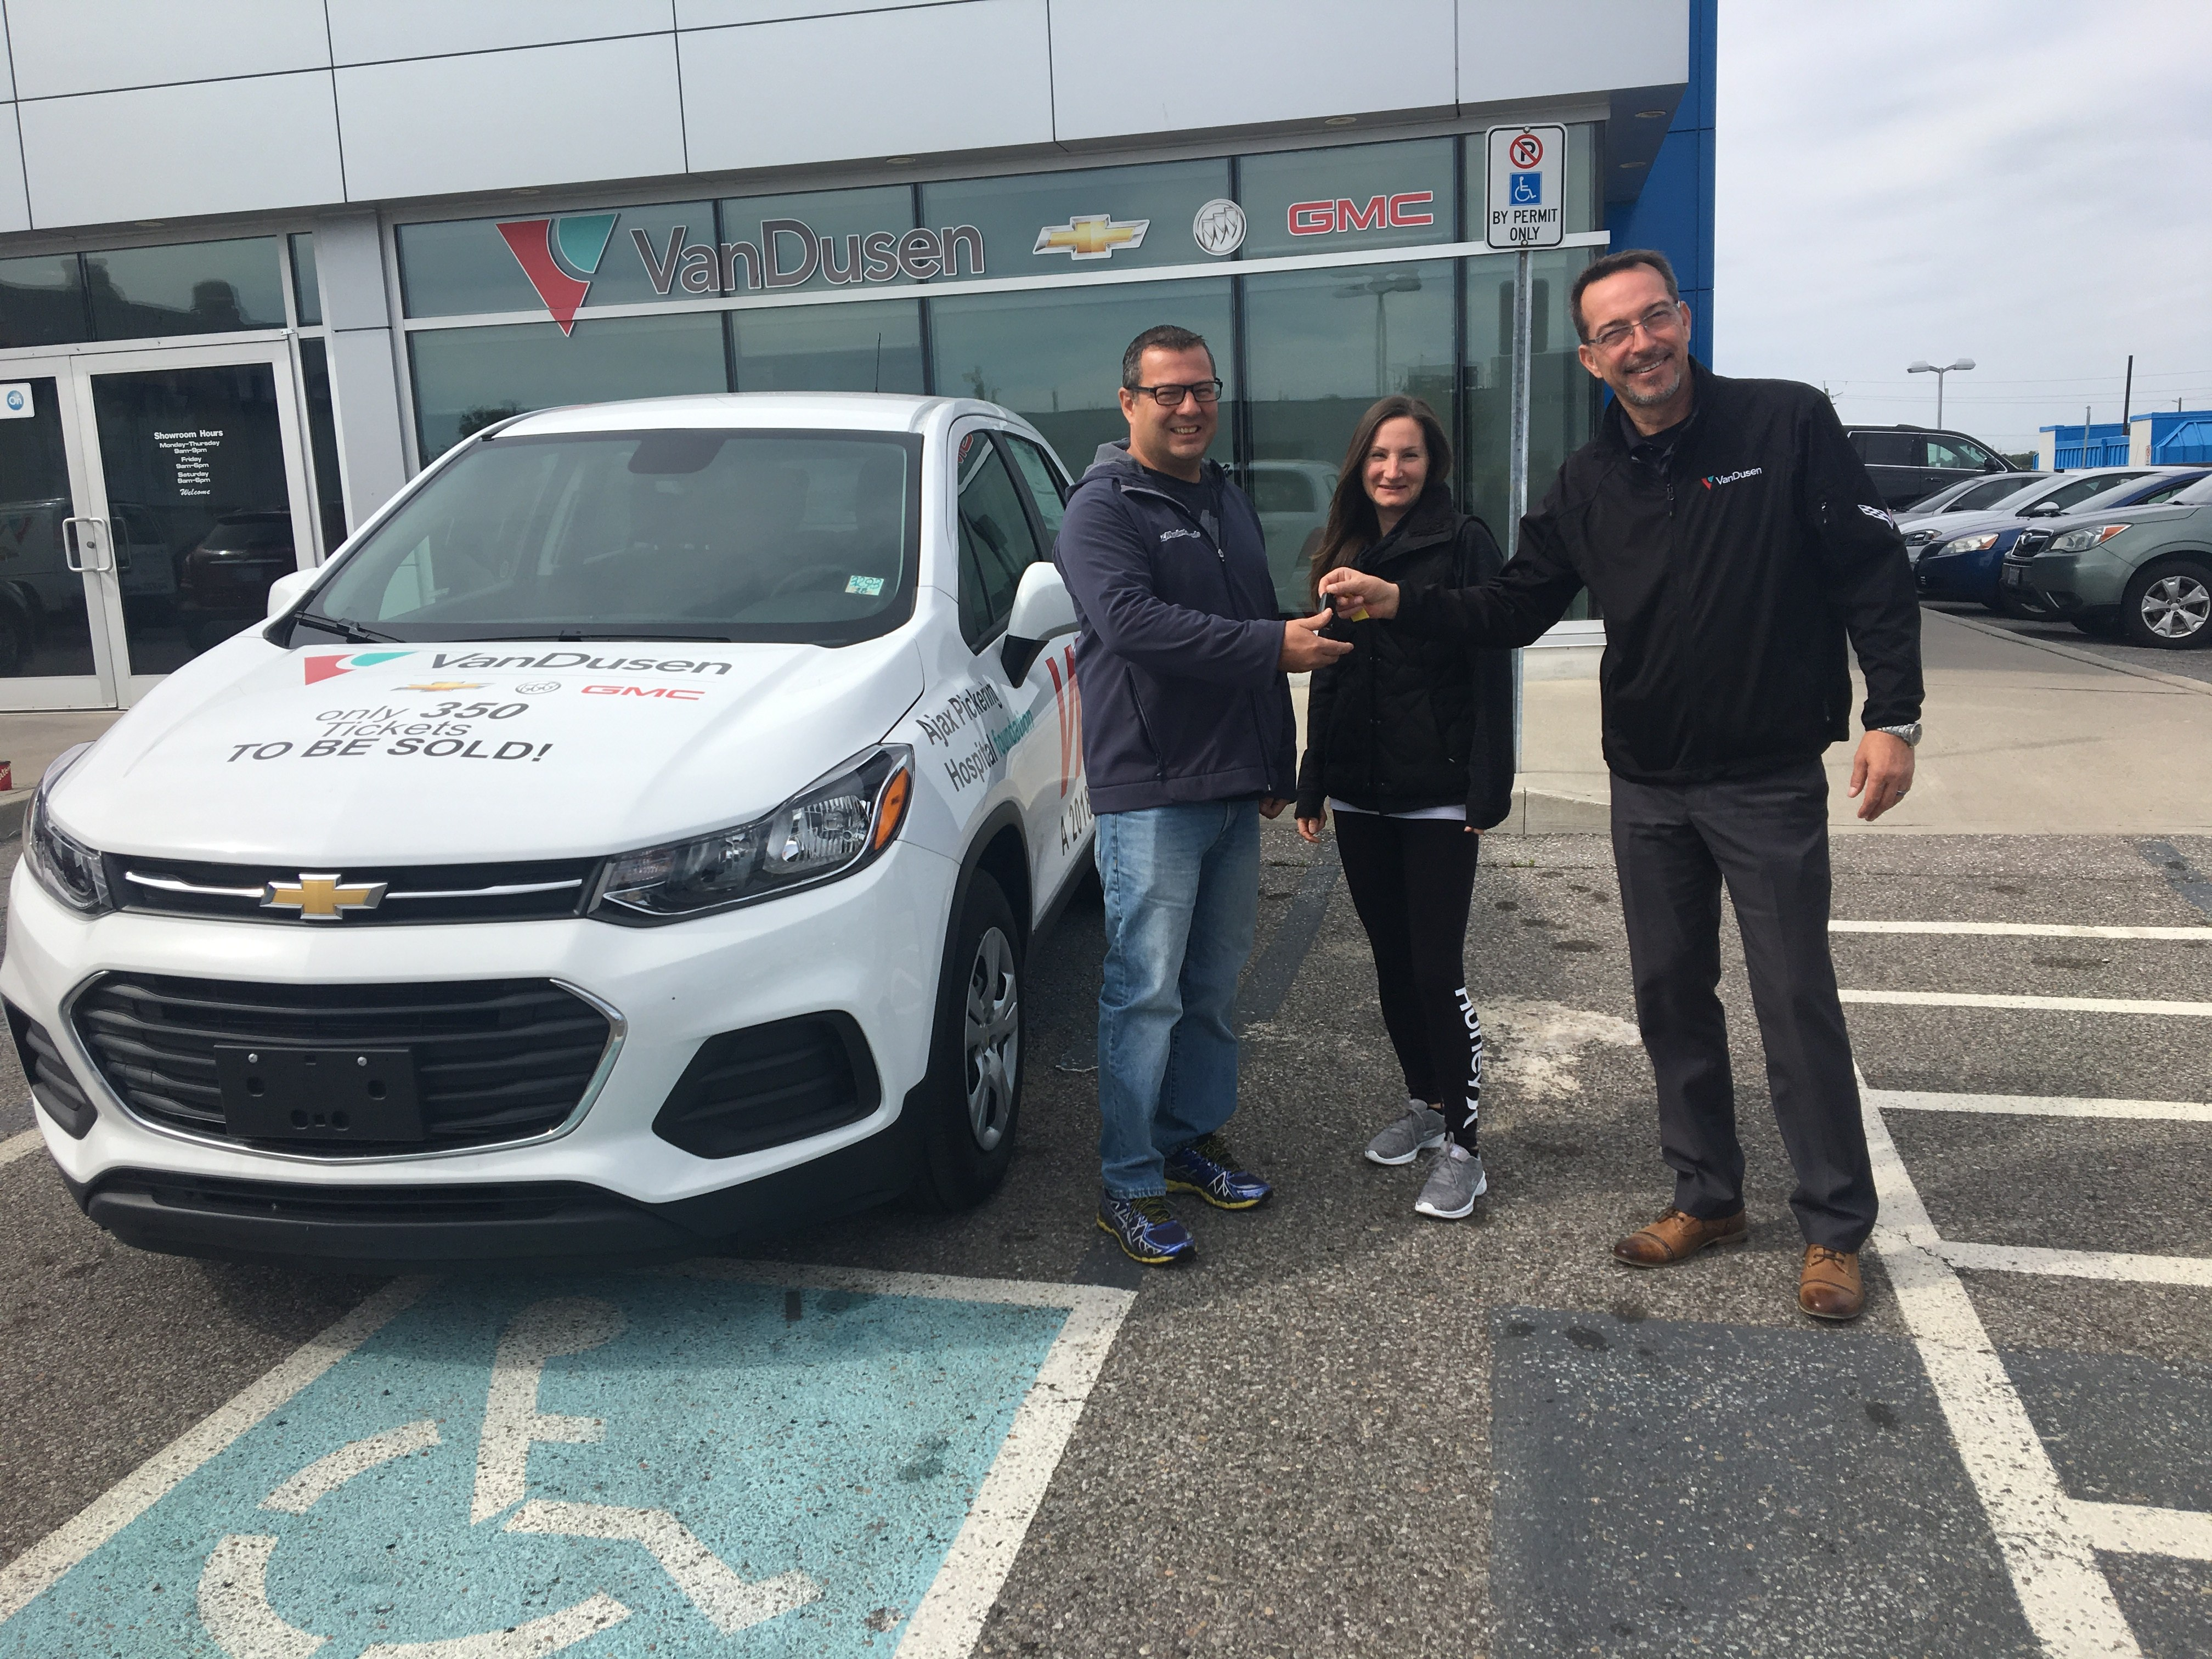 Ajax Pickering Hospital Foundation 2018 car raffle winners Mike & Tina picking up keys from Jim VanDusen Ajax Ontario